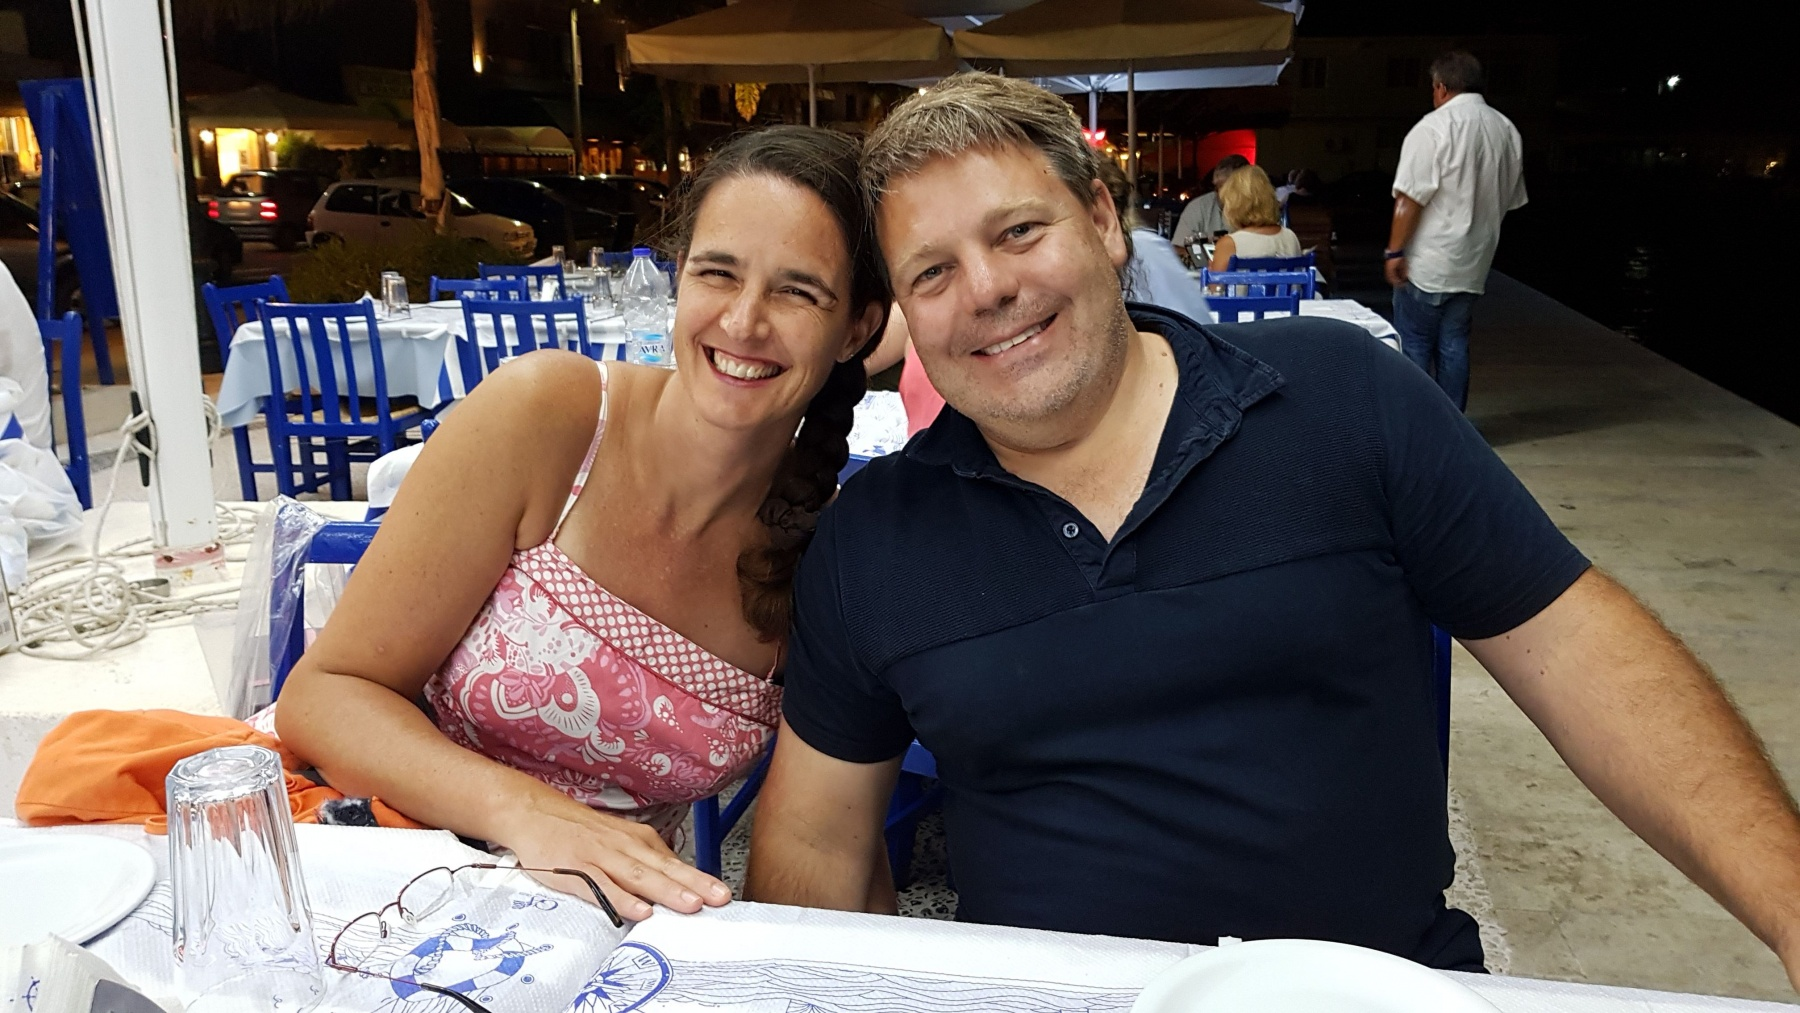 Adri and Mauro. September 2018.